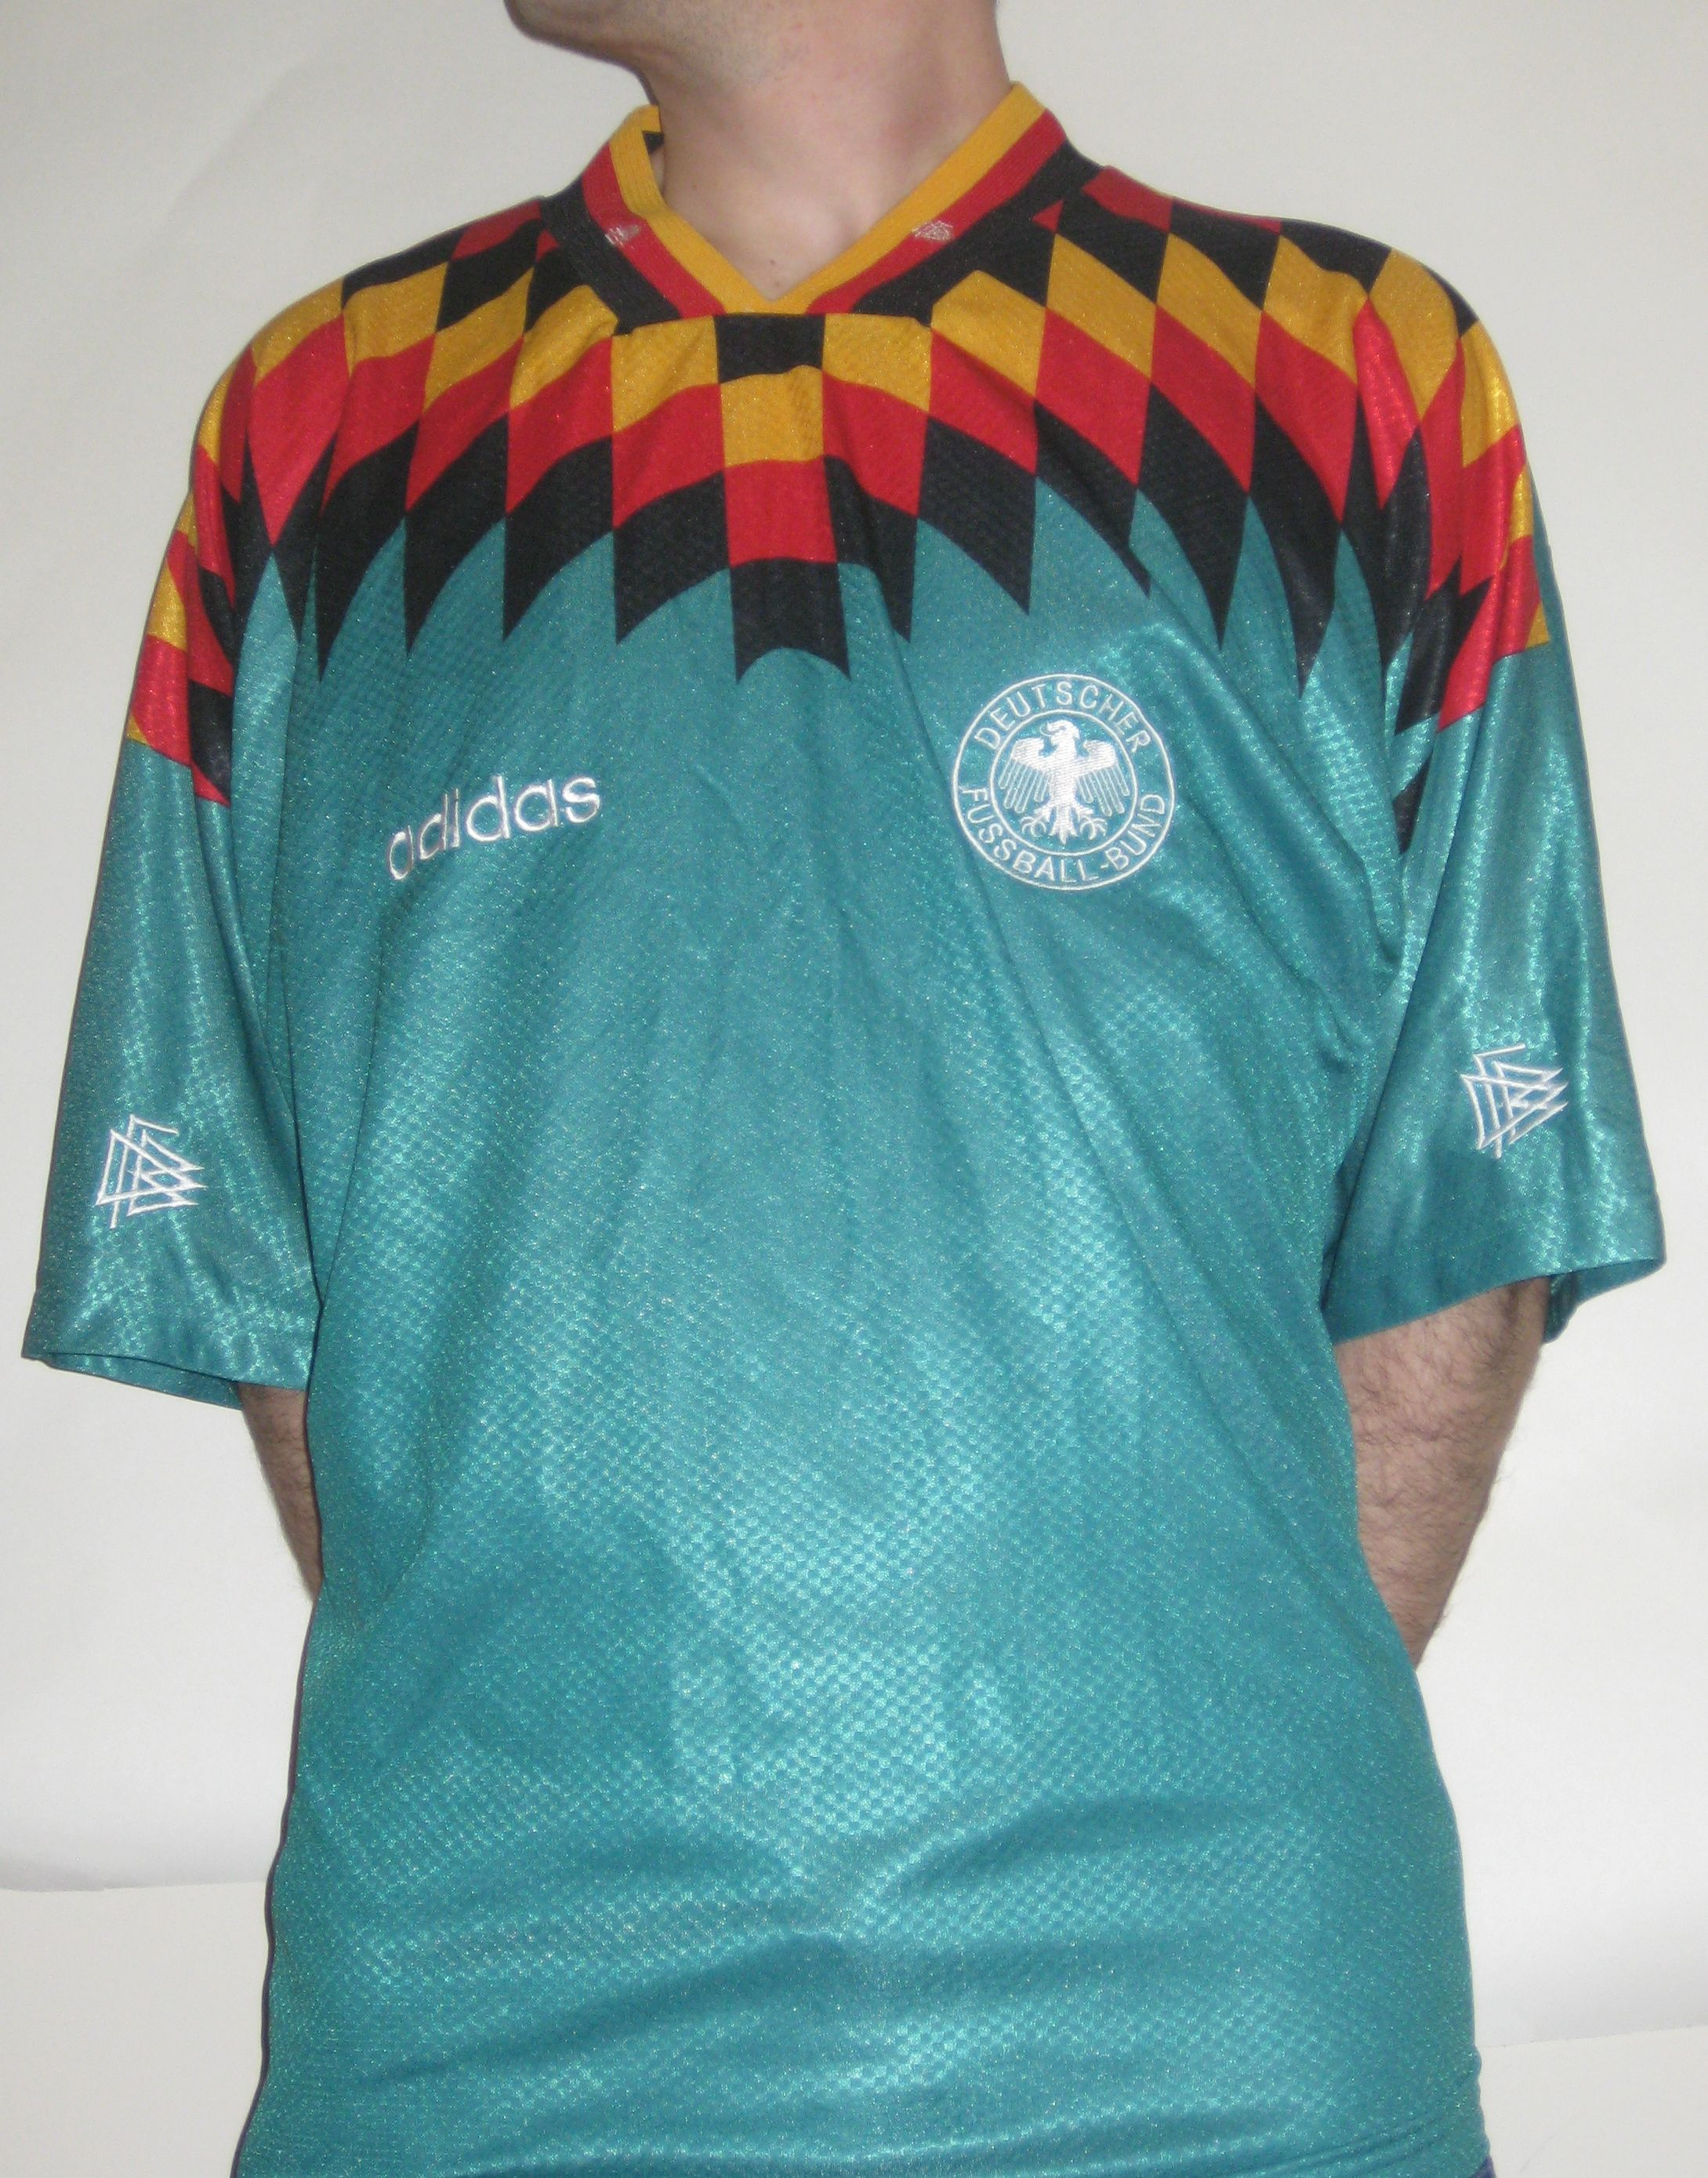 Germany Away 1994 Germany Wore This Jersey During Usa 94 World Cup Where They Crashed Out Of The Tournament In The Quarters To Bulgaria Jersey Des Futbol